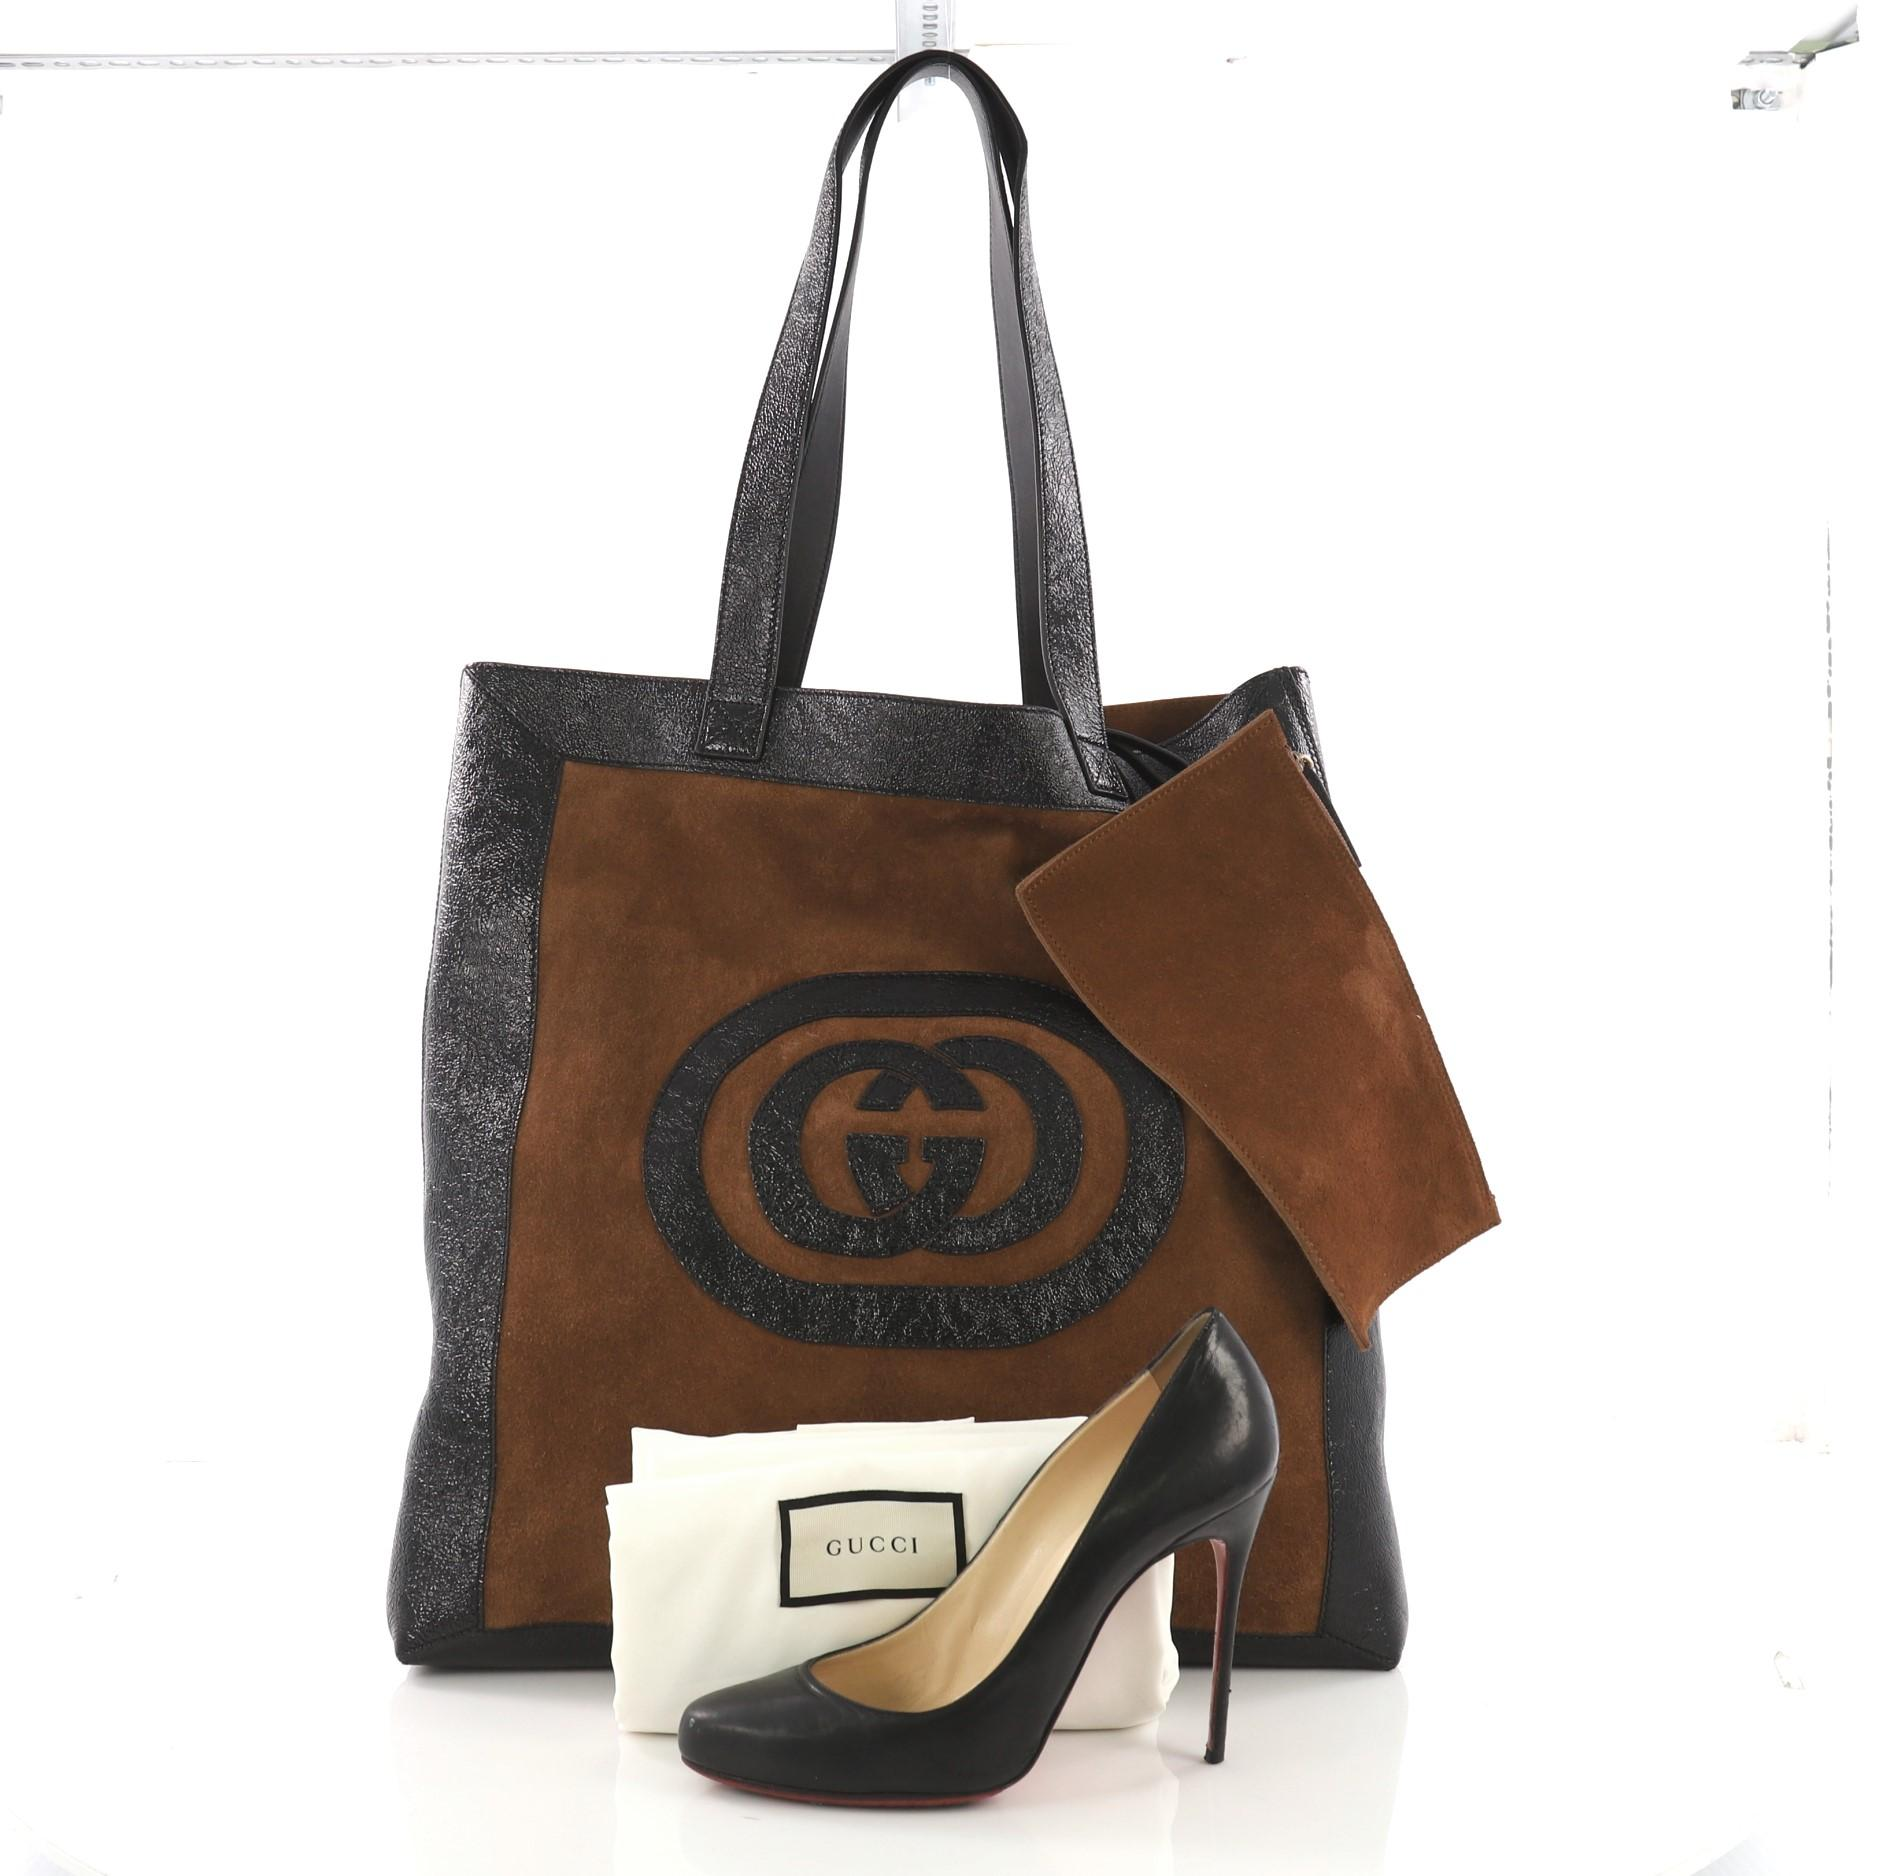 1279091a71952a Gucci Ophidia Soft Open Tote Suede Large at 1stdibs